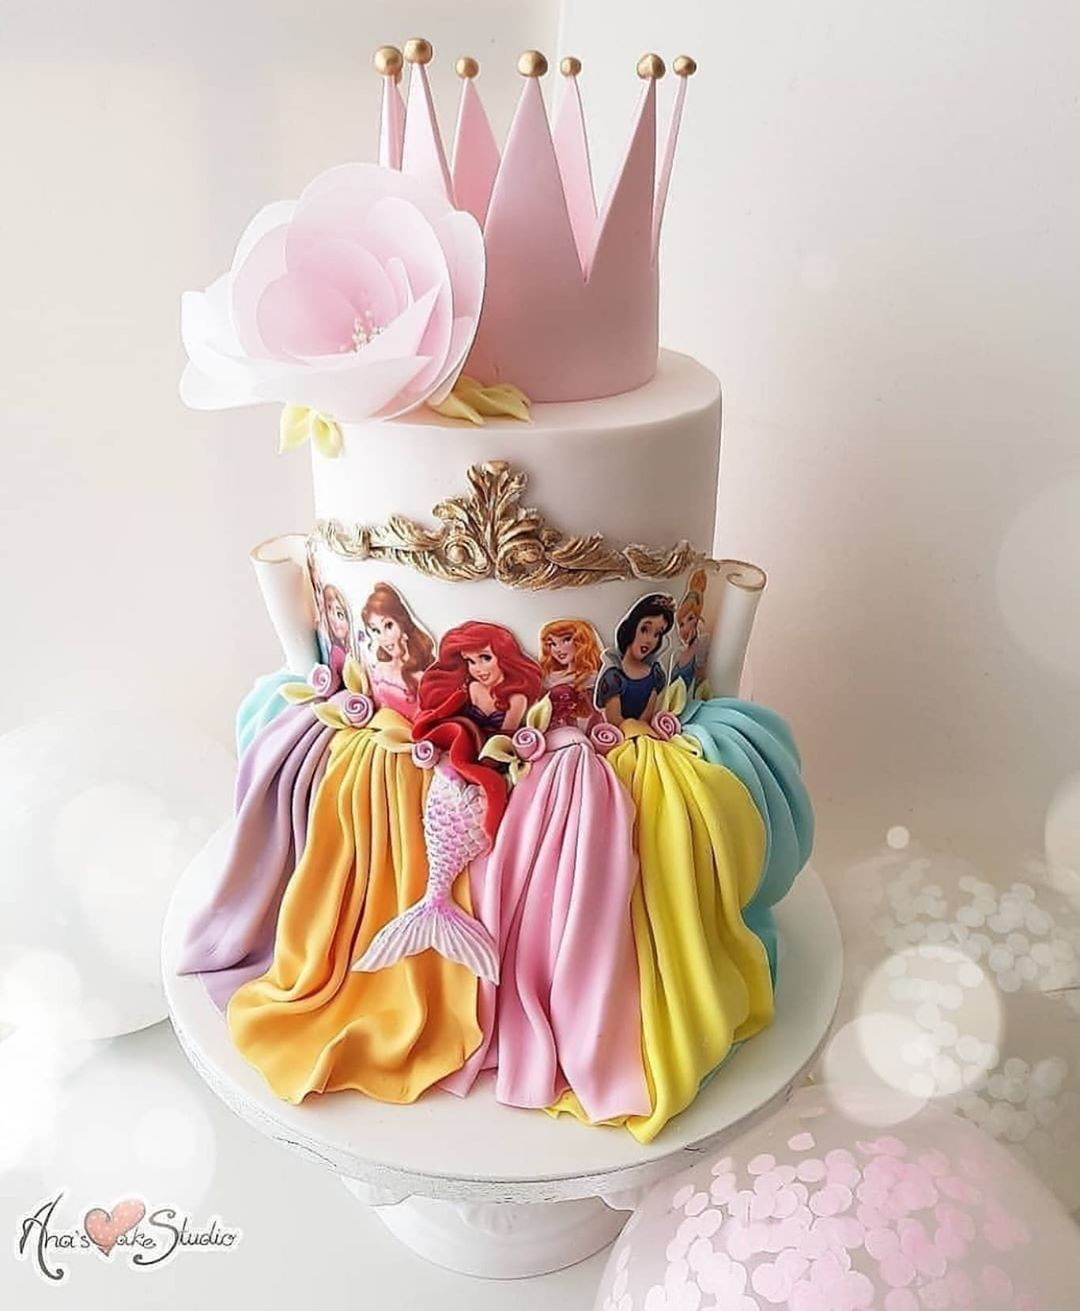 Enjoyable The Most Beautiful Disney Cake Ever Credit Funny Birthday Cards Online Barepcheapnameinfo